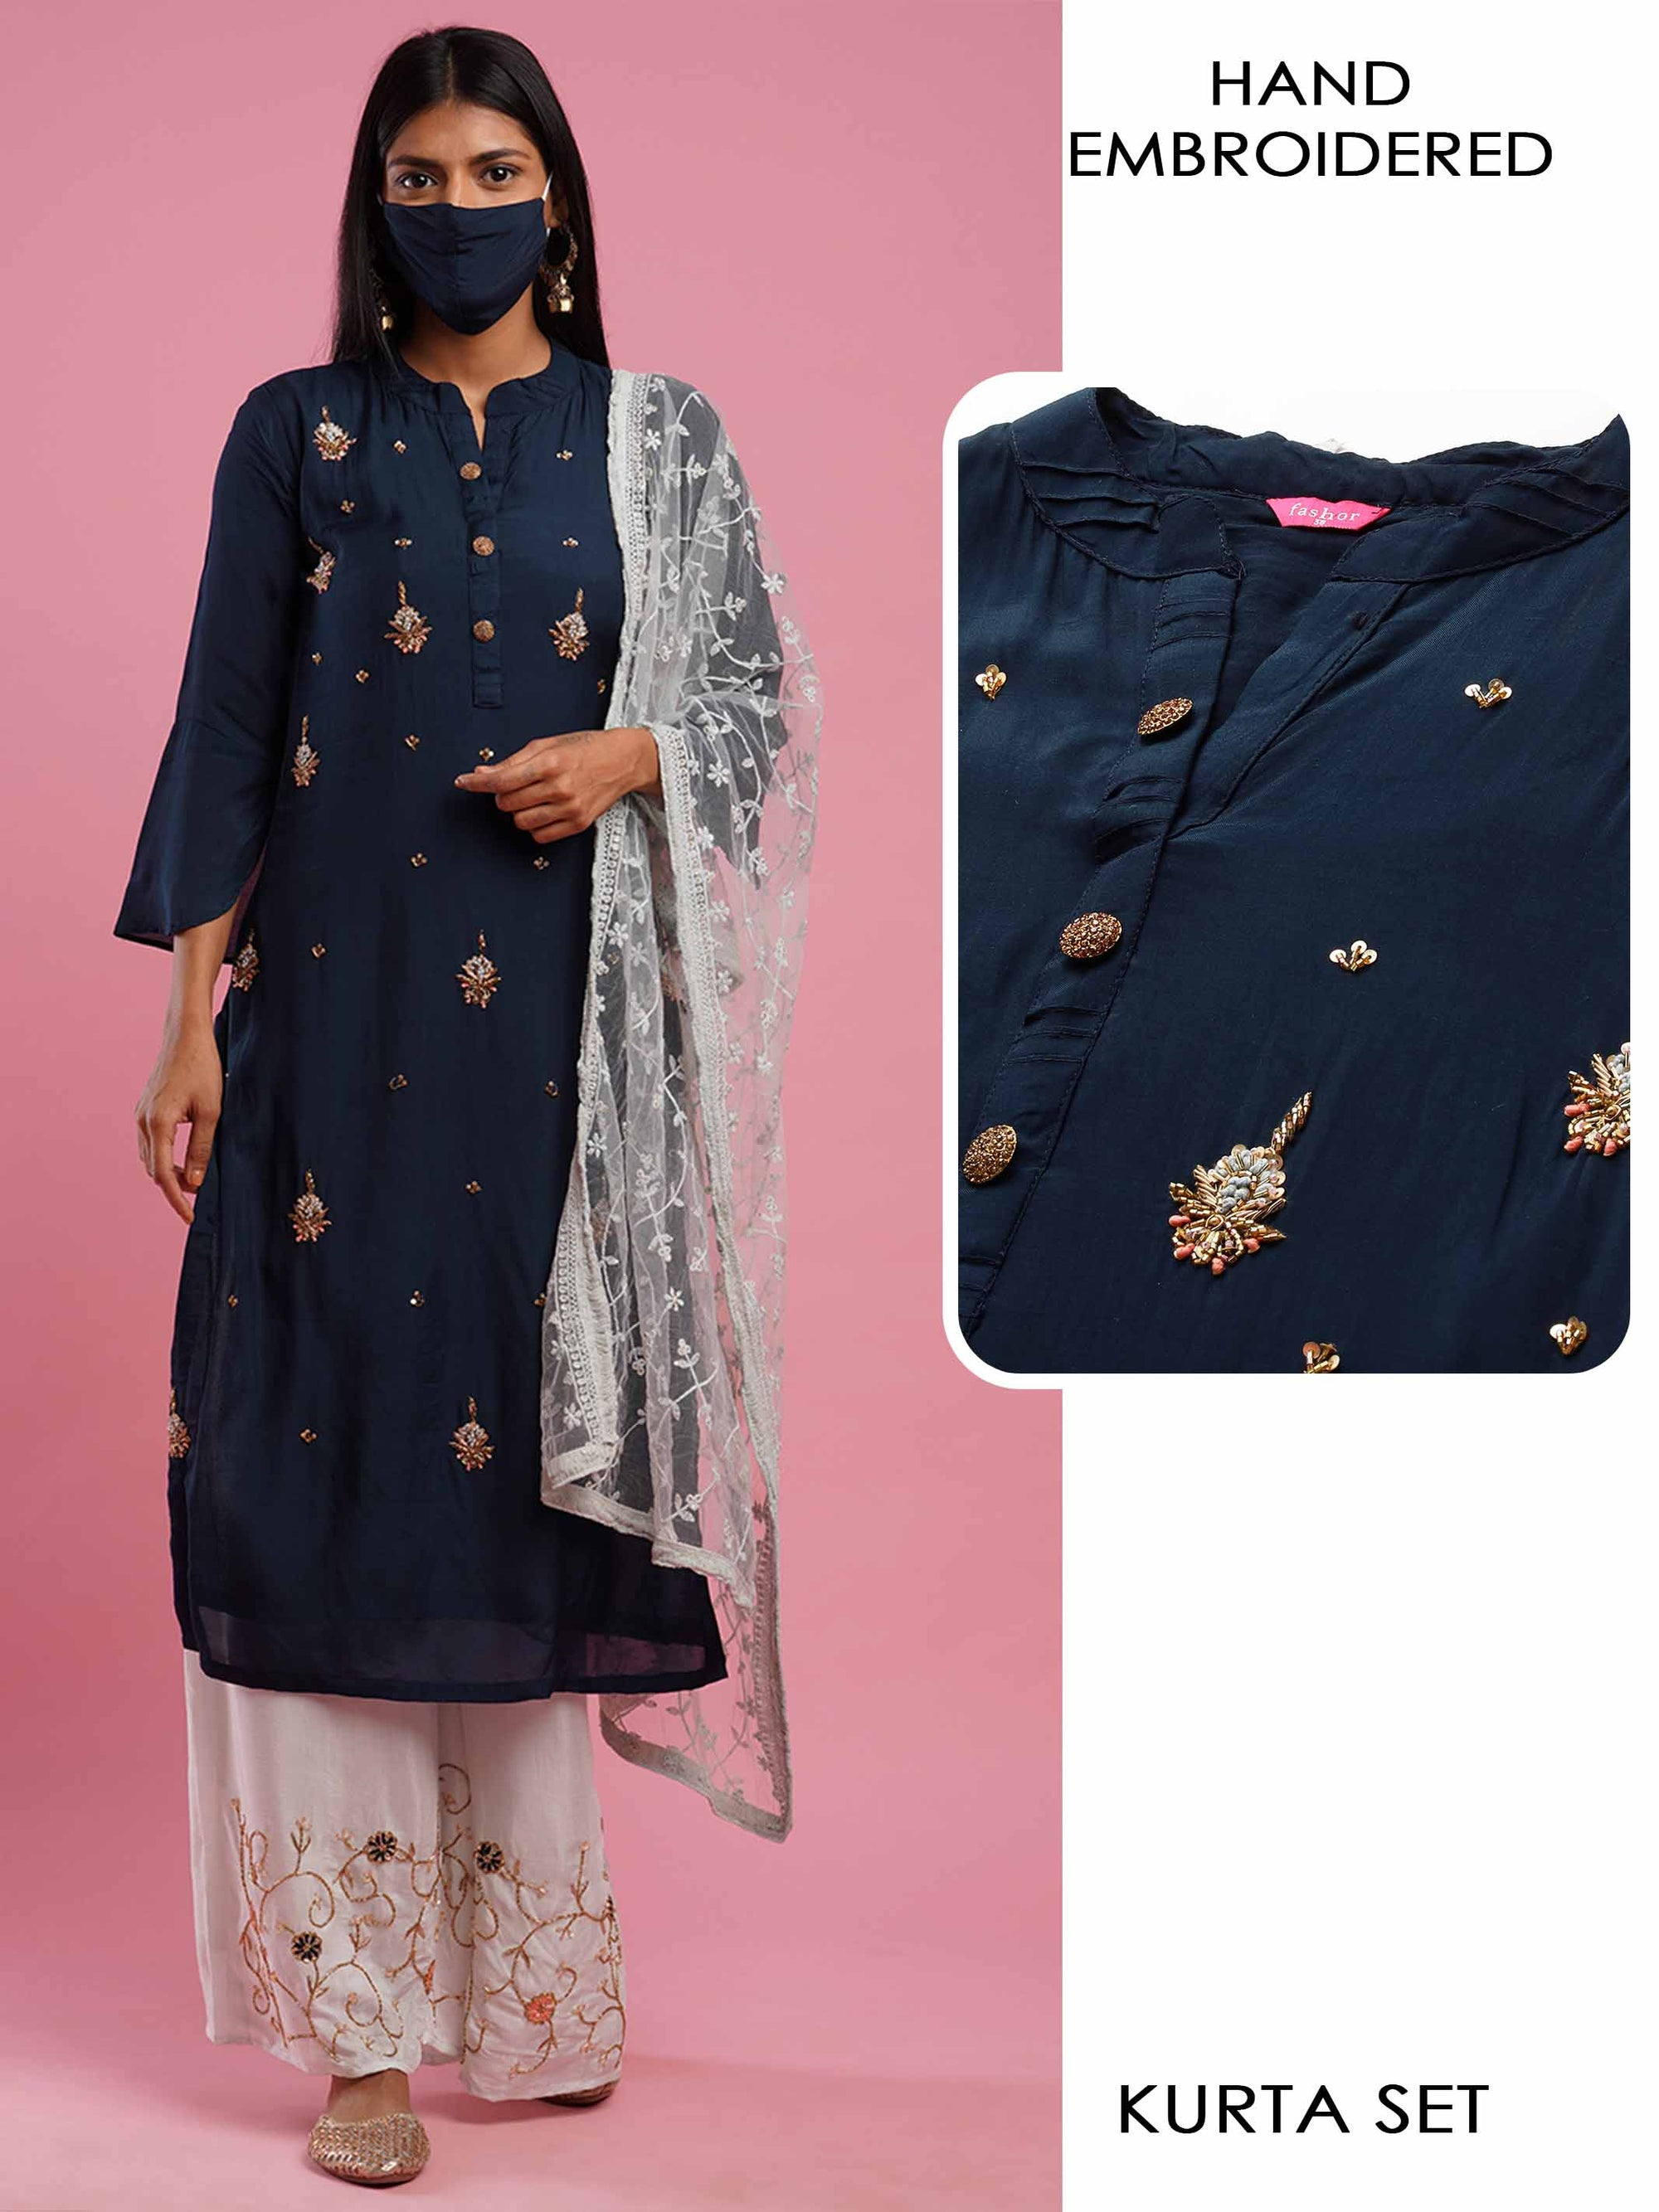 Floral Hand Embroidered Kurta with Ethnic Hand Embroidered Palazzo & Floral Embroidered Dupatta - Navy Blue